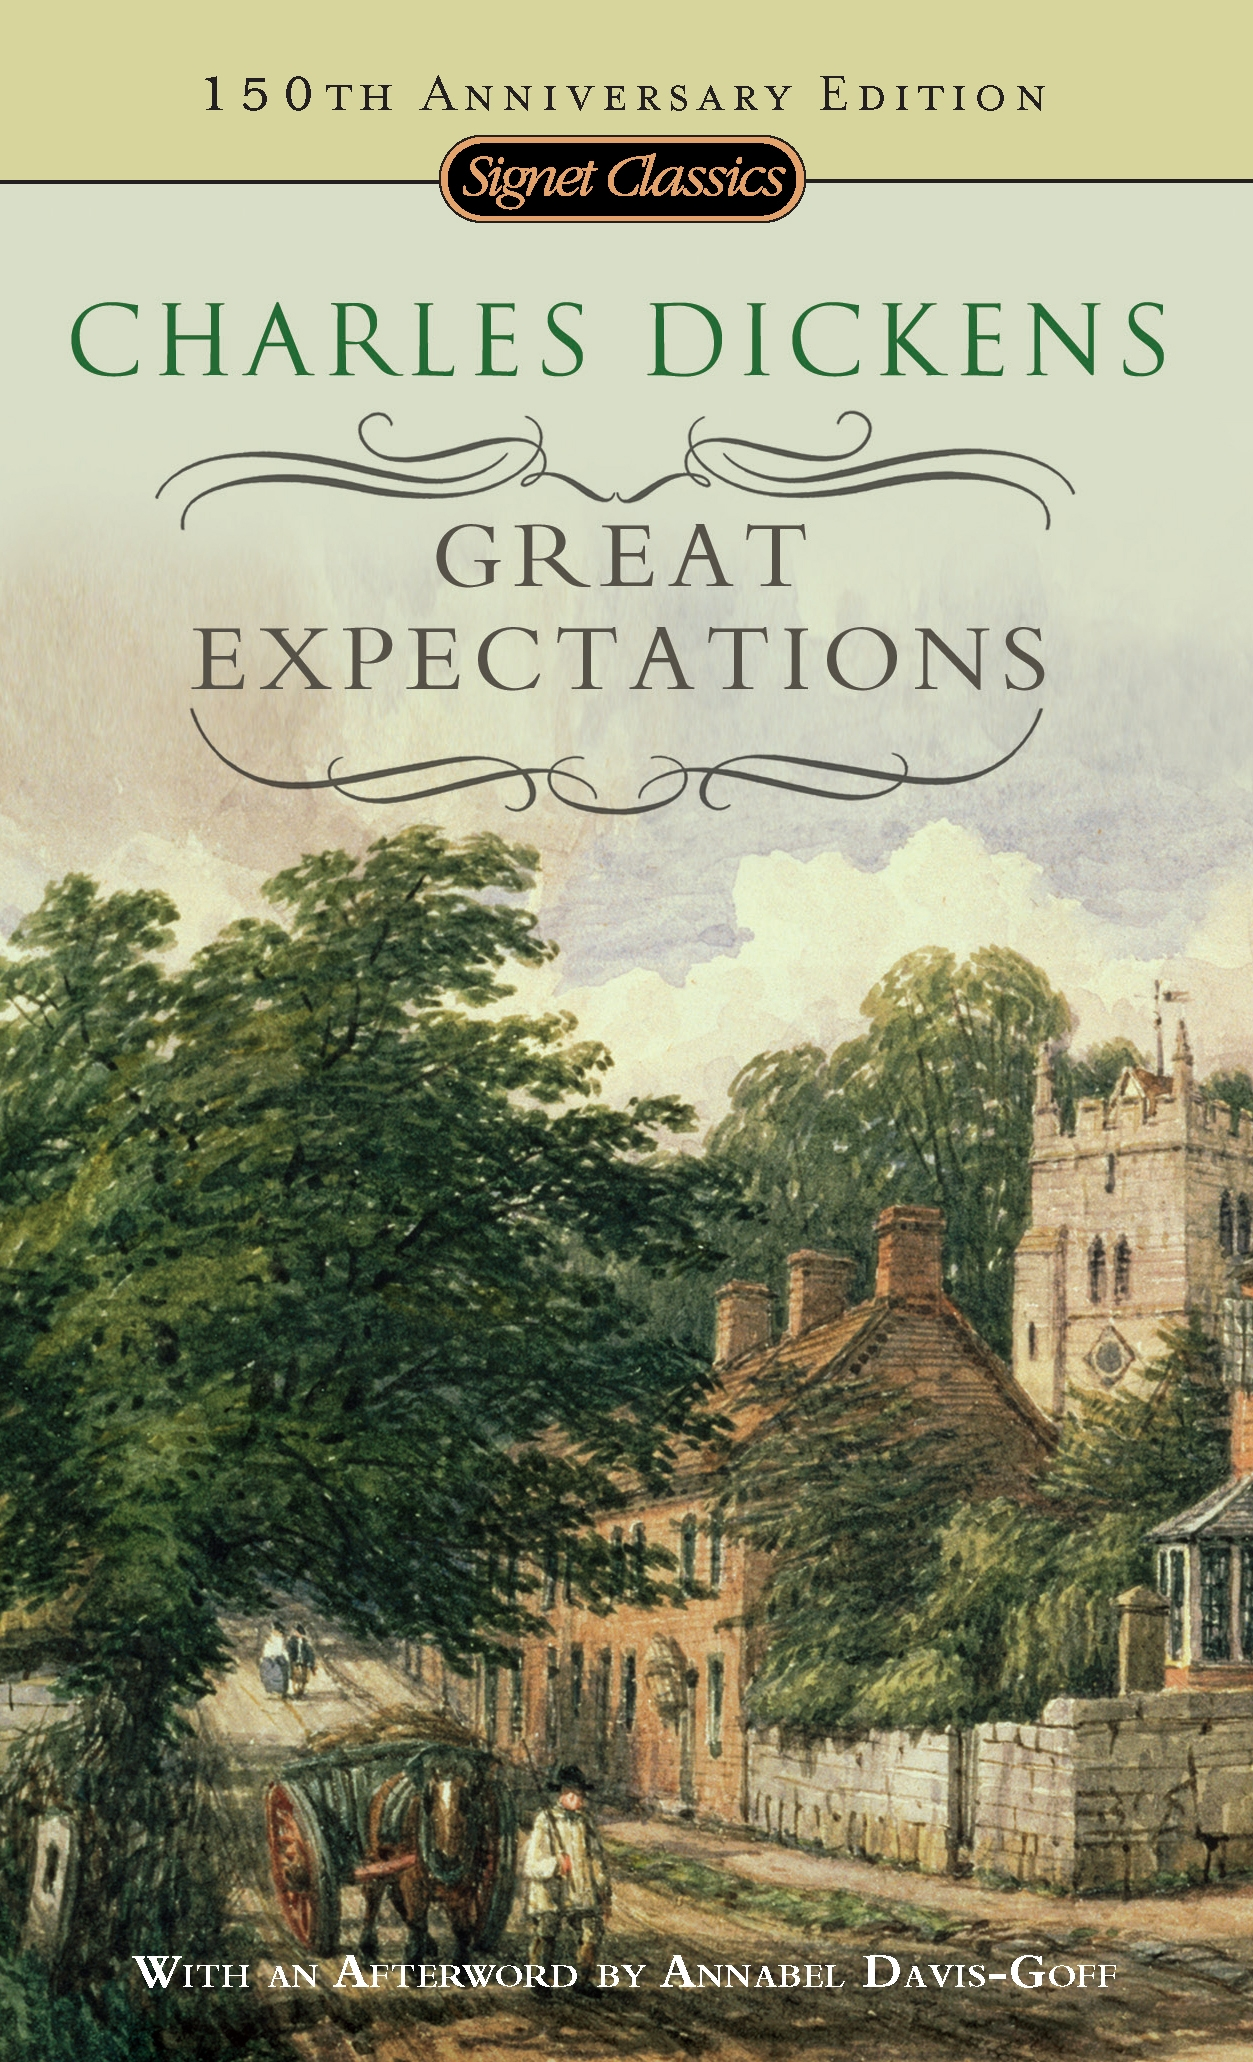 an analysis of the book great expectations by charles dickens Great expectations charles dickens buy book summary about great expectations removing #book# from your reading list will also remove any bookmarked pages.